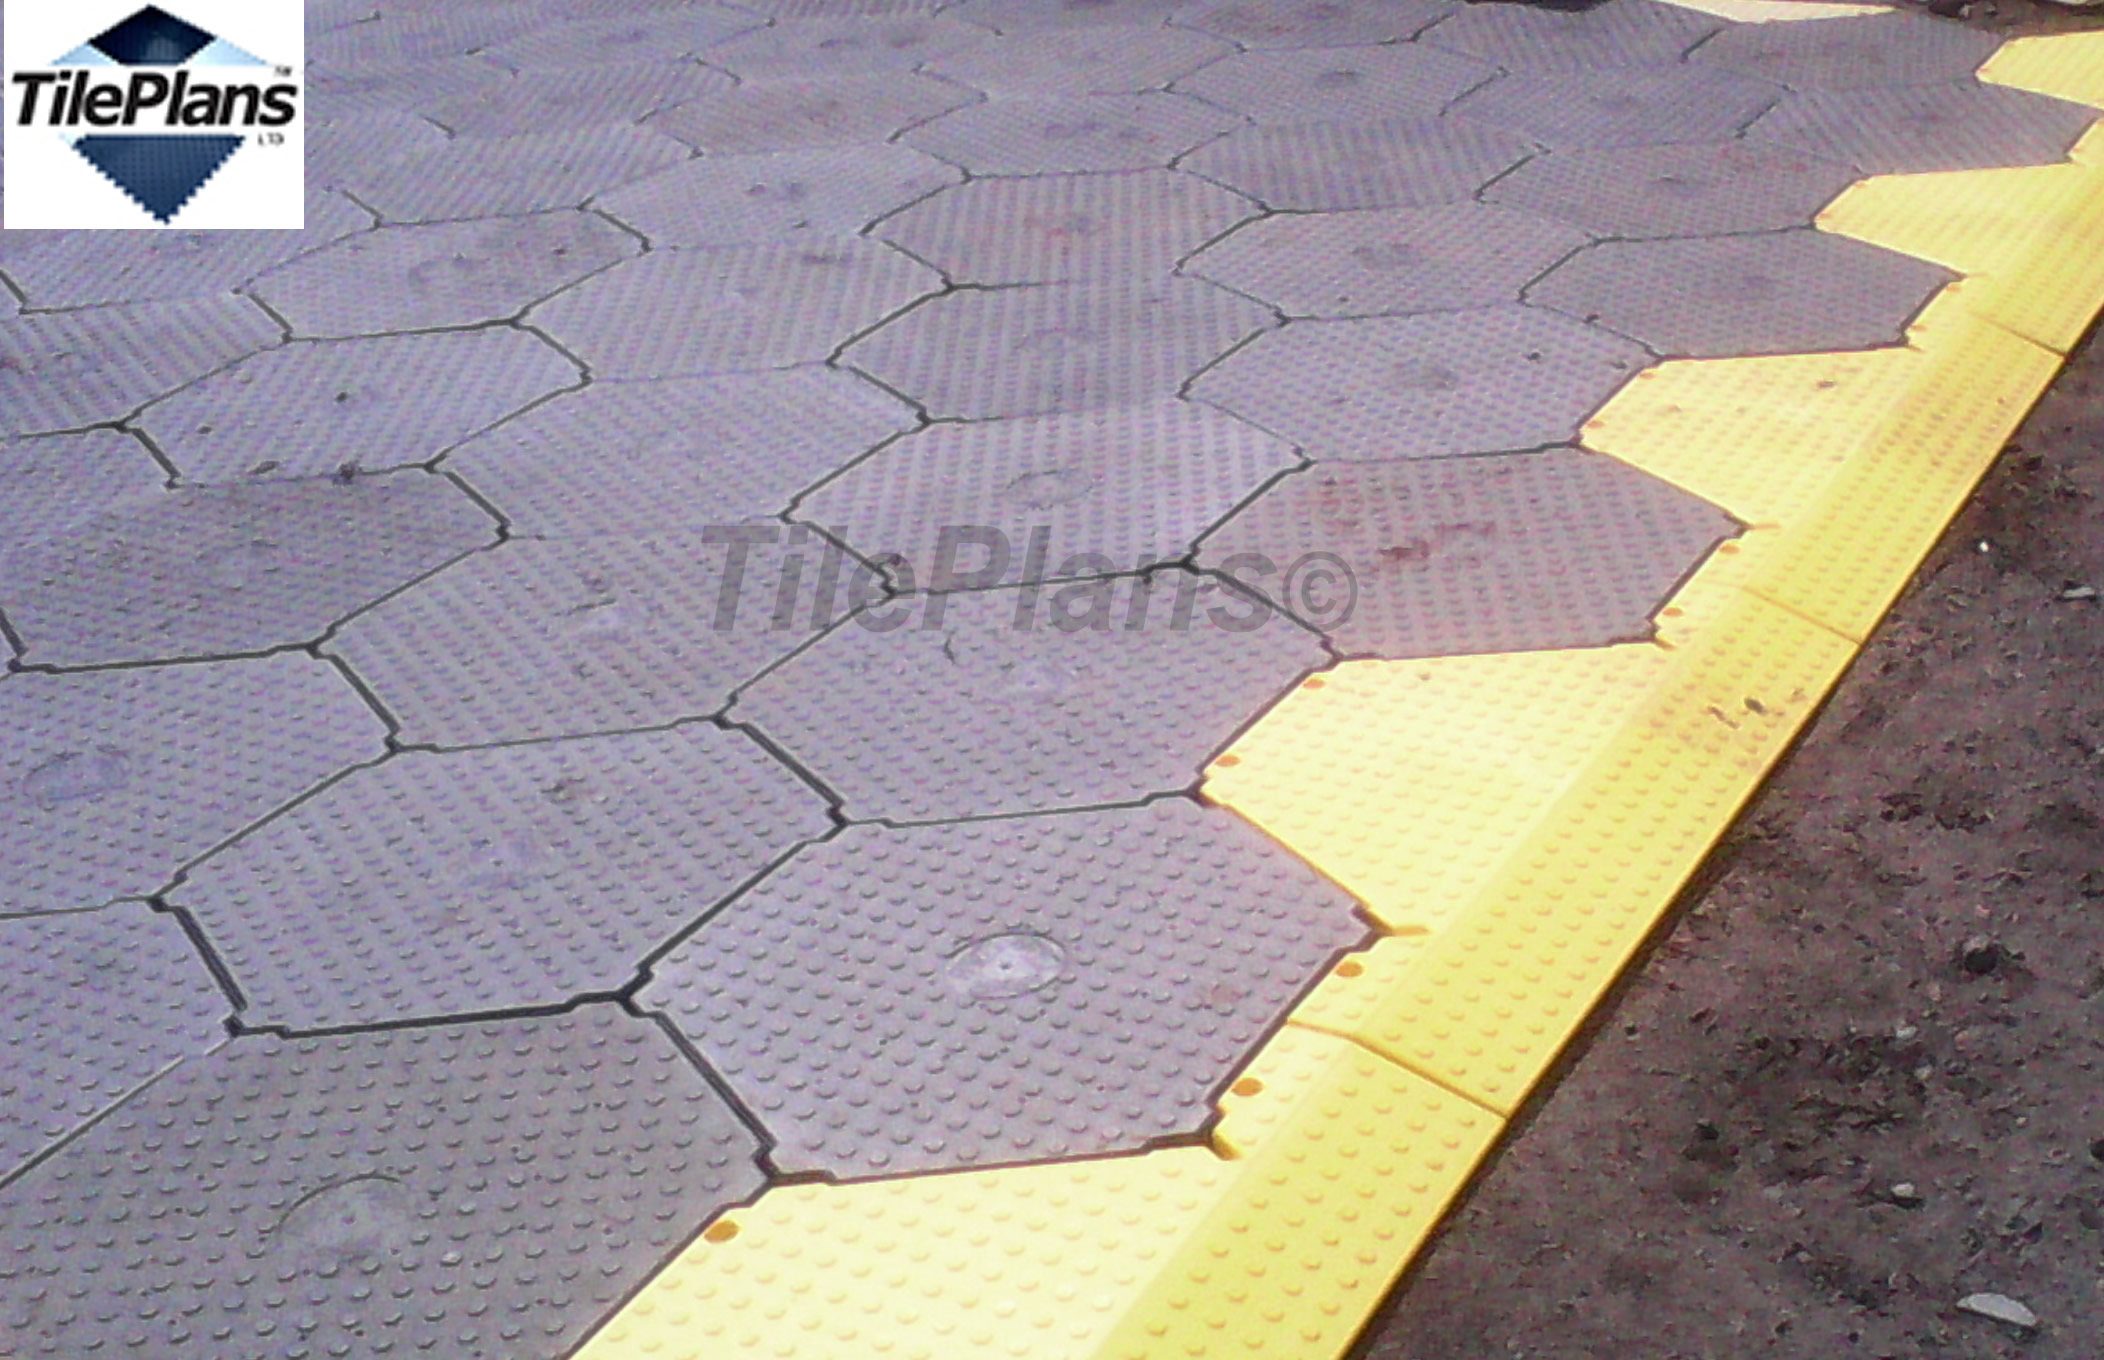 TilePlans Outdoor UltimateTile and Ramps